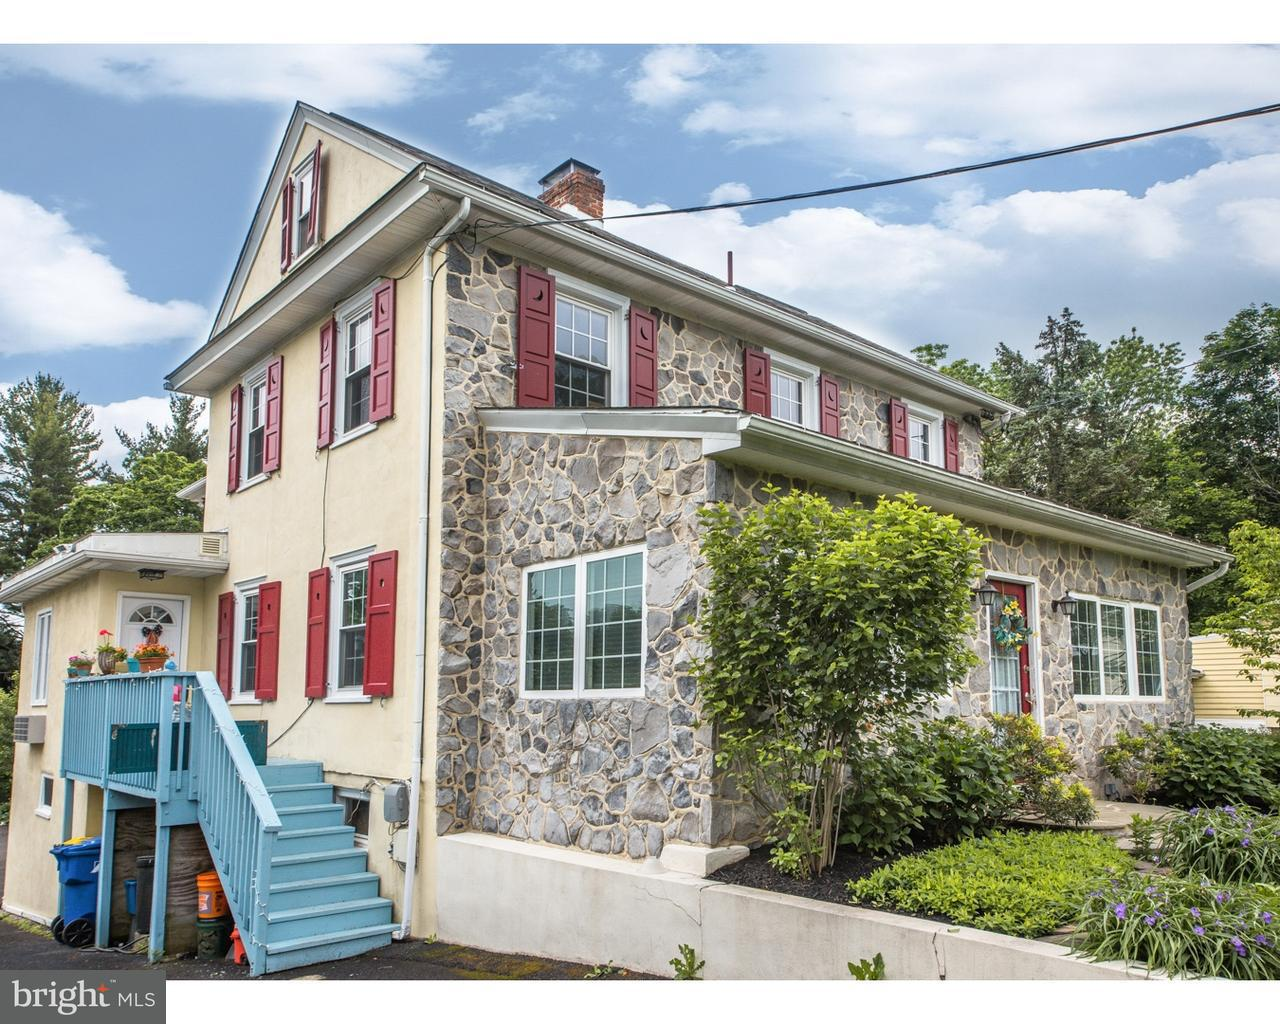 70 W BUTLER AVE, DOYLESTOWN - Listed at $399,900, DOYLESTOWN